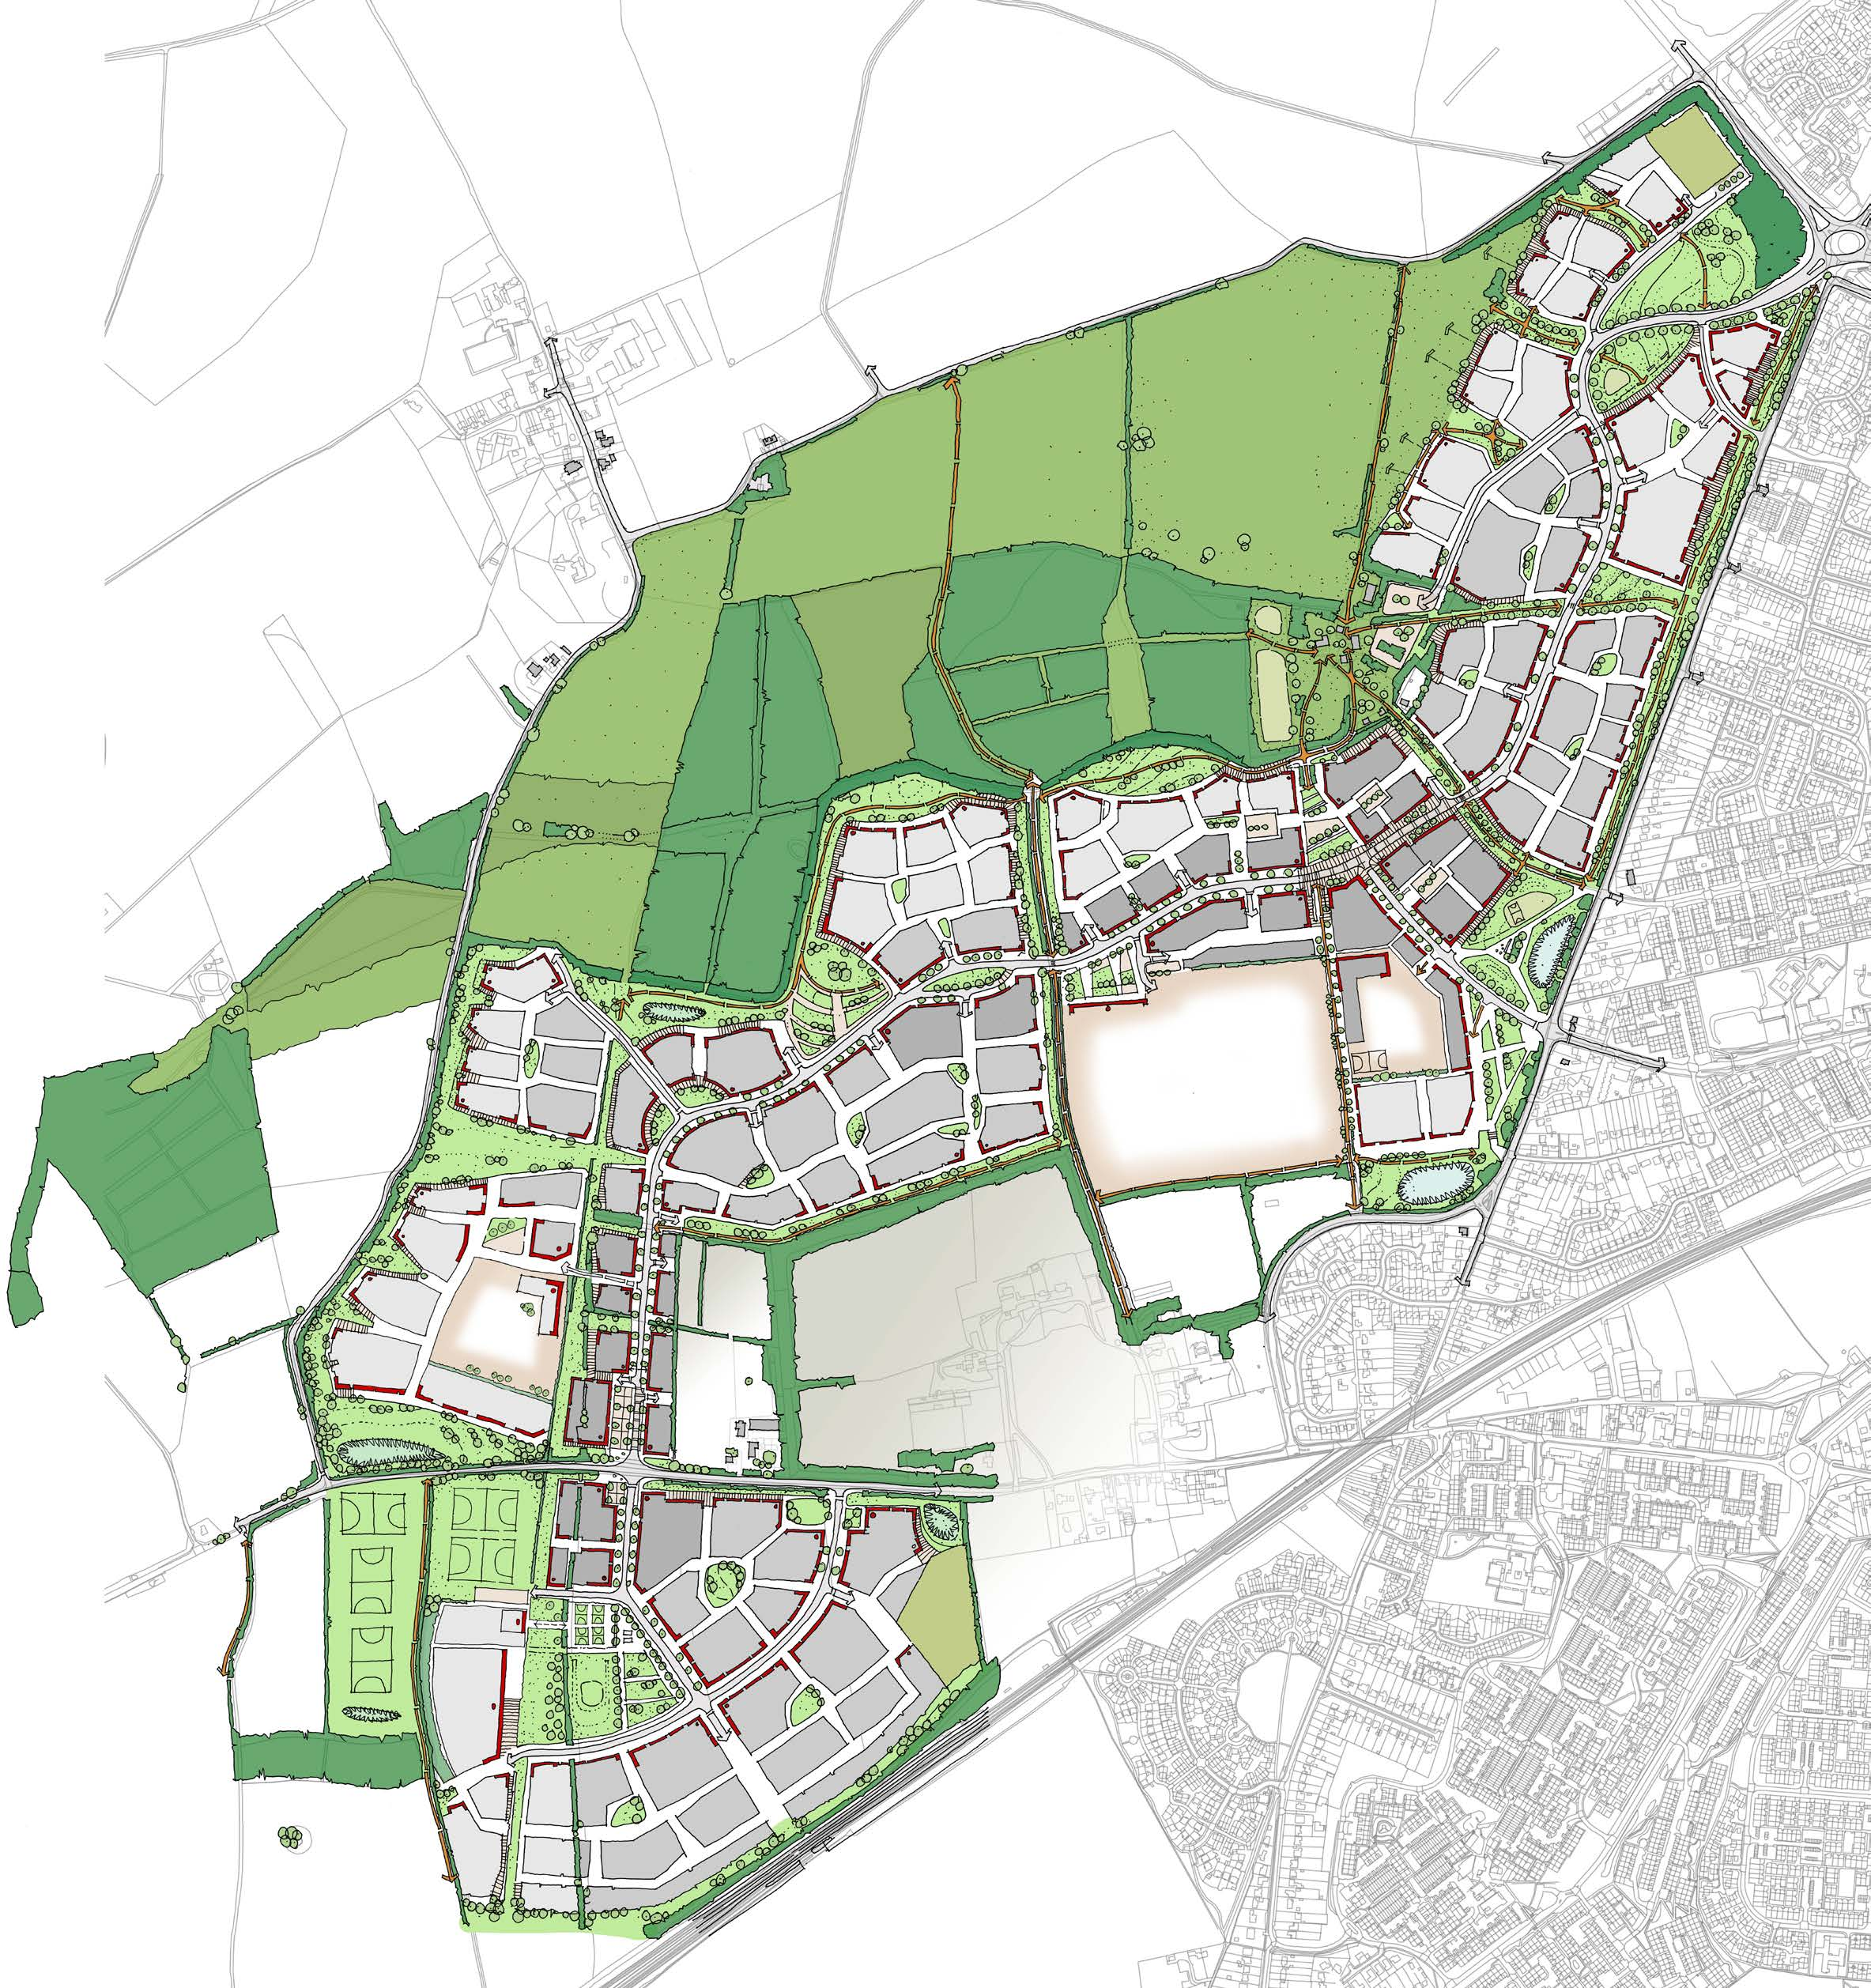 Application Site Map: Planning Application For New Basingstoke Garden Town